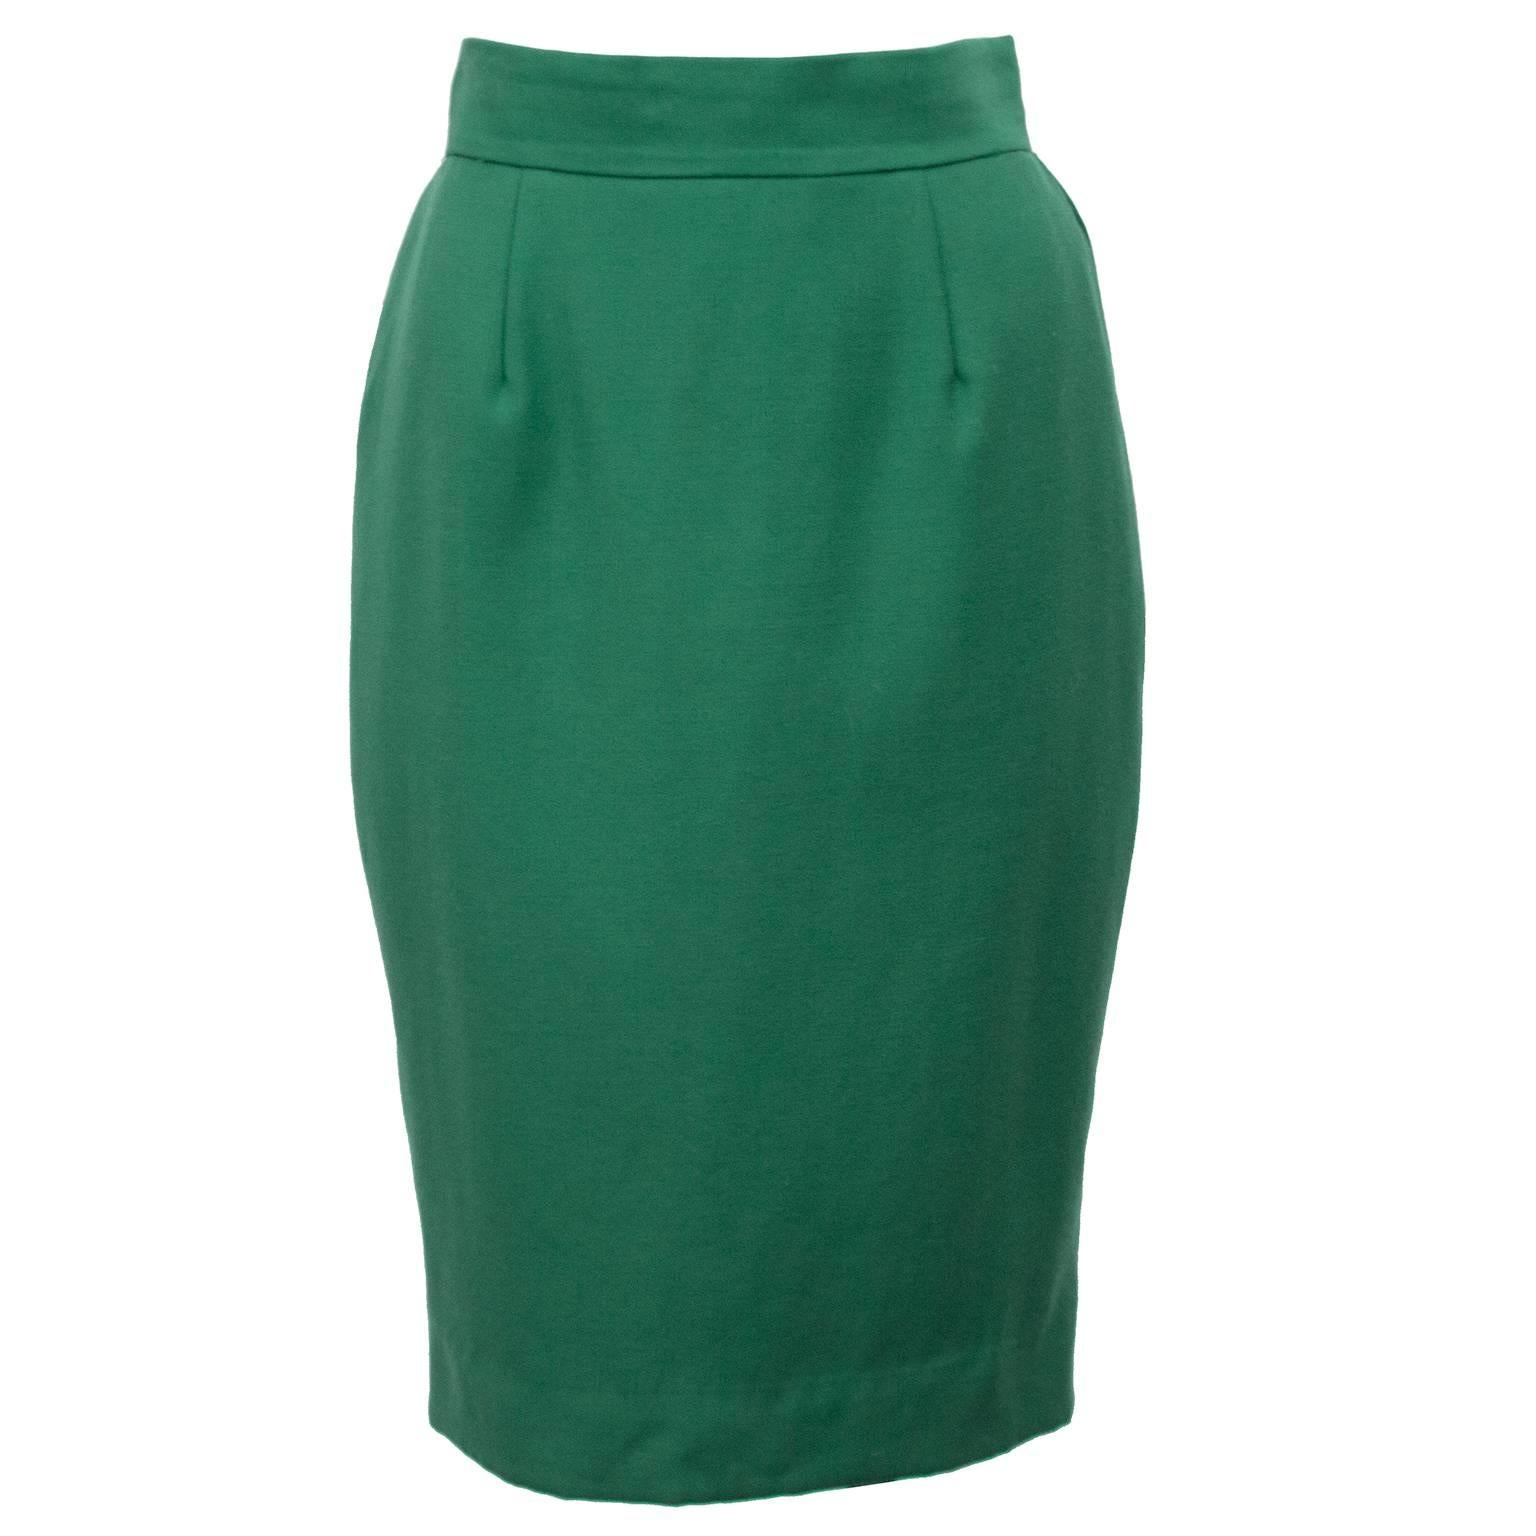 146d13cda 1980s Moschino Cheap and Chic Kelly Green Wool Skirt Suit For Sale at  1stdibs